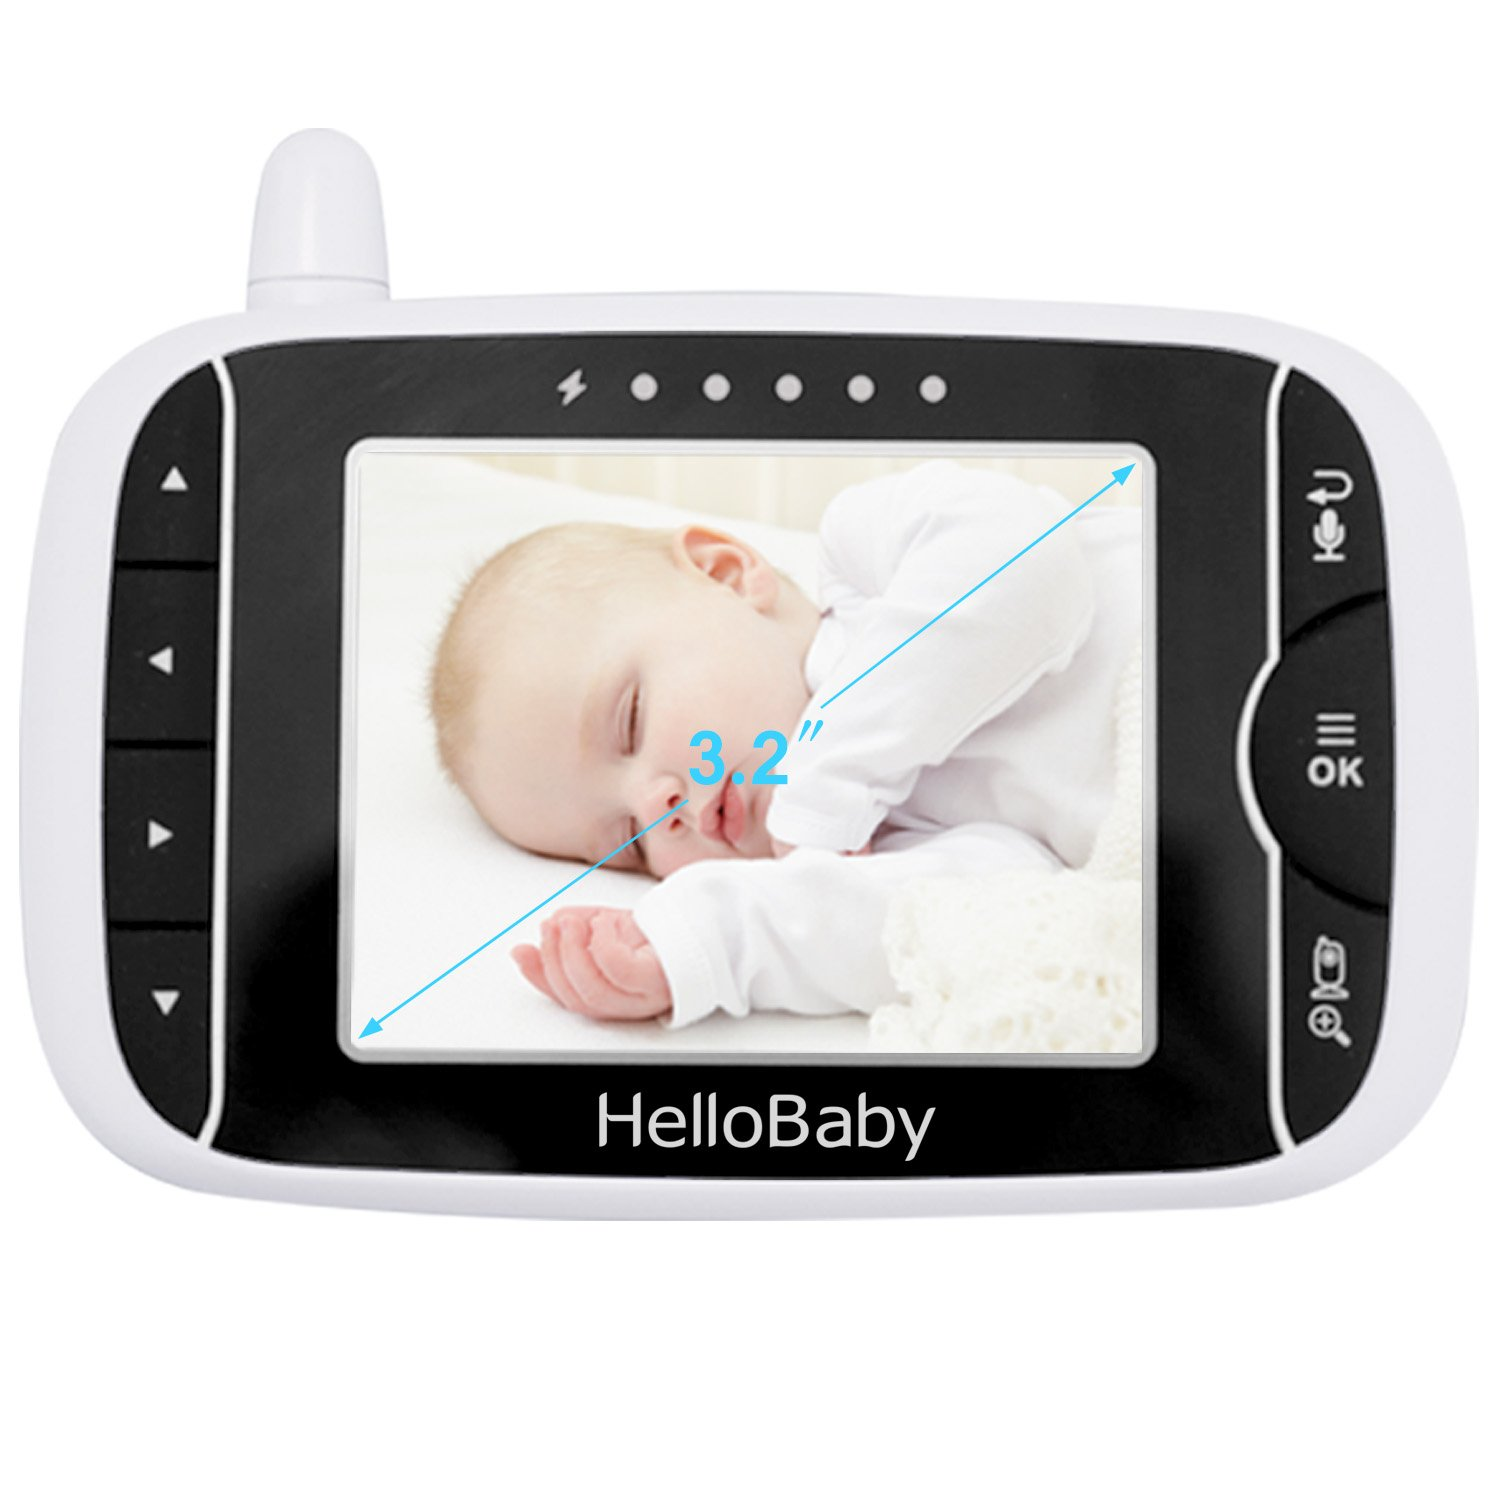 White Night Vision Temperature Monitoring /& 2 Way Talkback System Hello Baby Wireless Video Baby Monitor with Digital Camera HB24